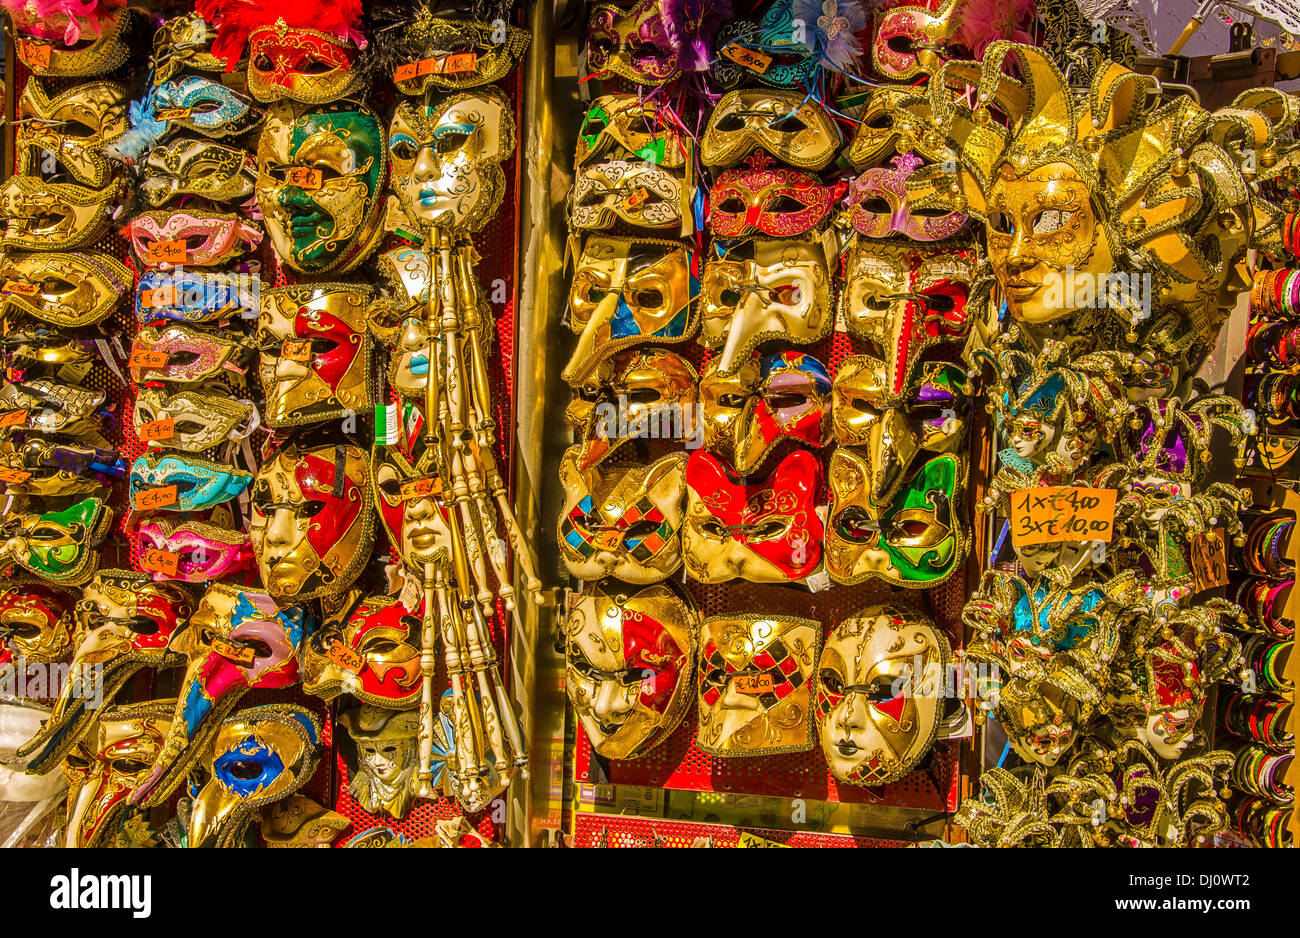 Carnival masks are very popular tourist souvenirs and are displayed in many small shops and street stalls. - Stock Image